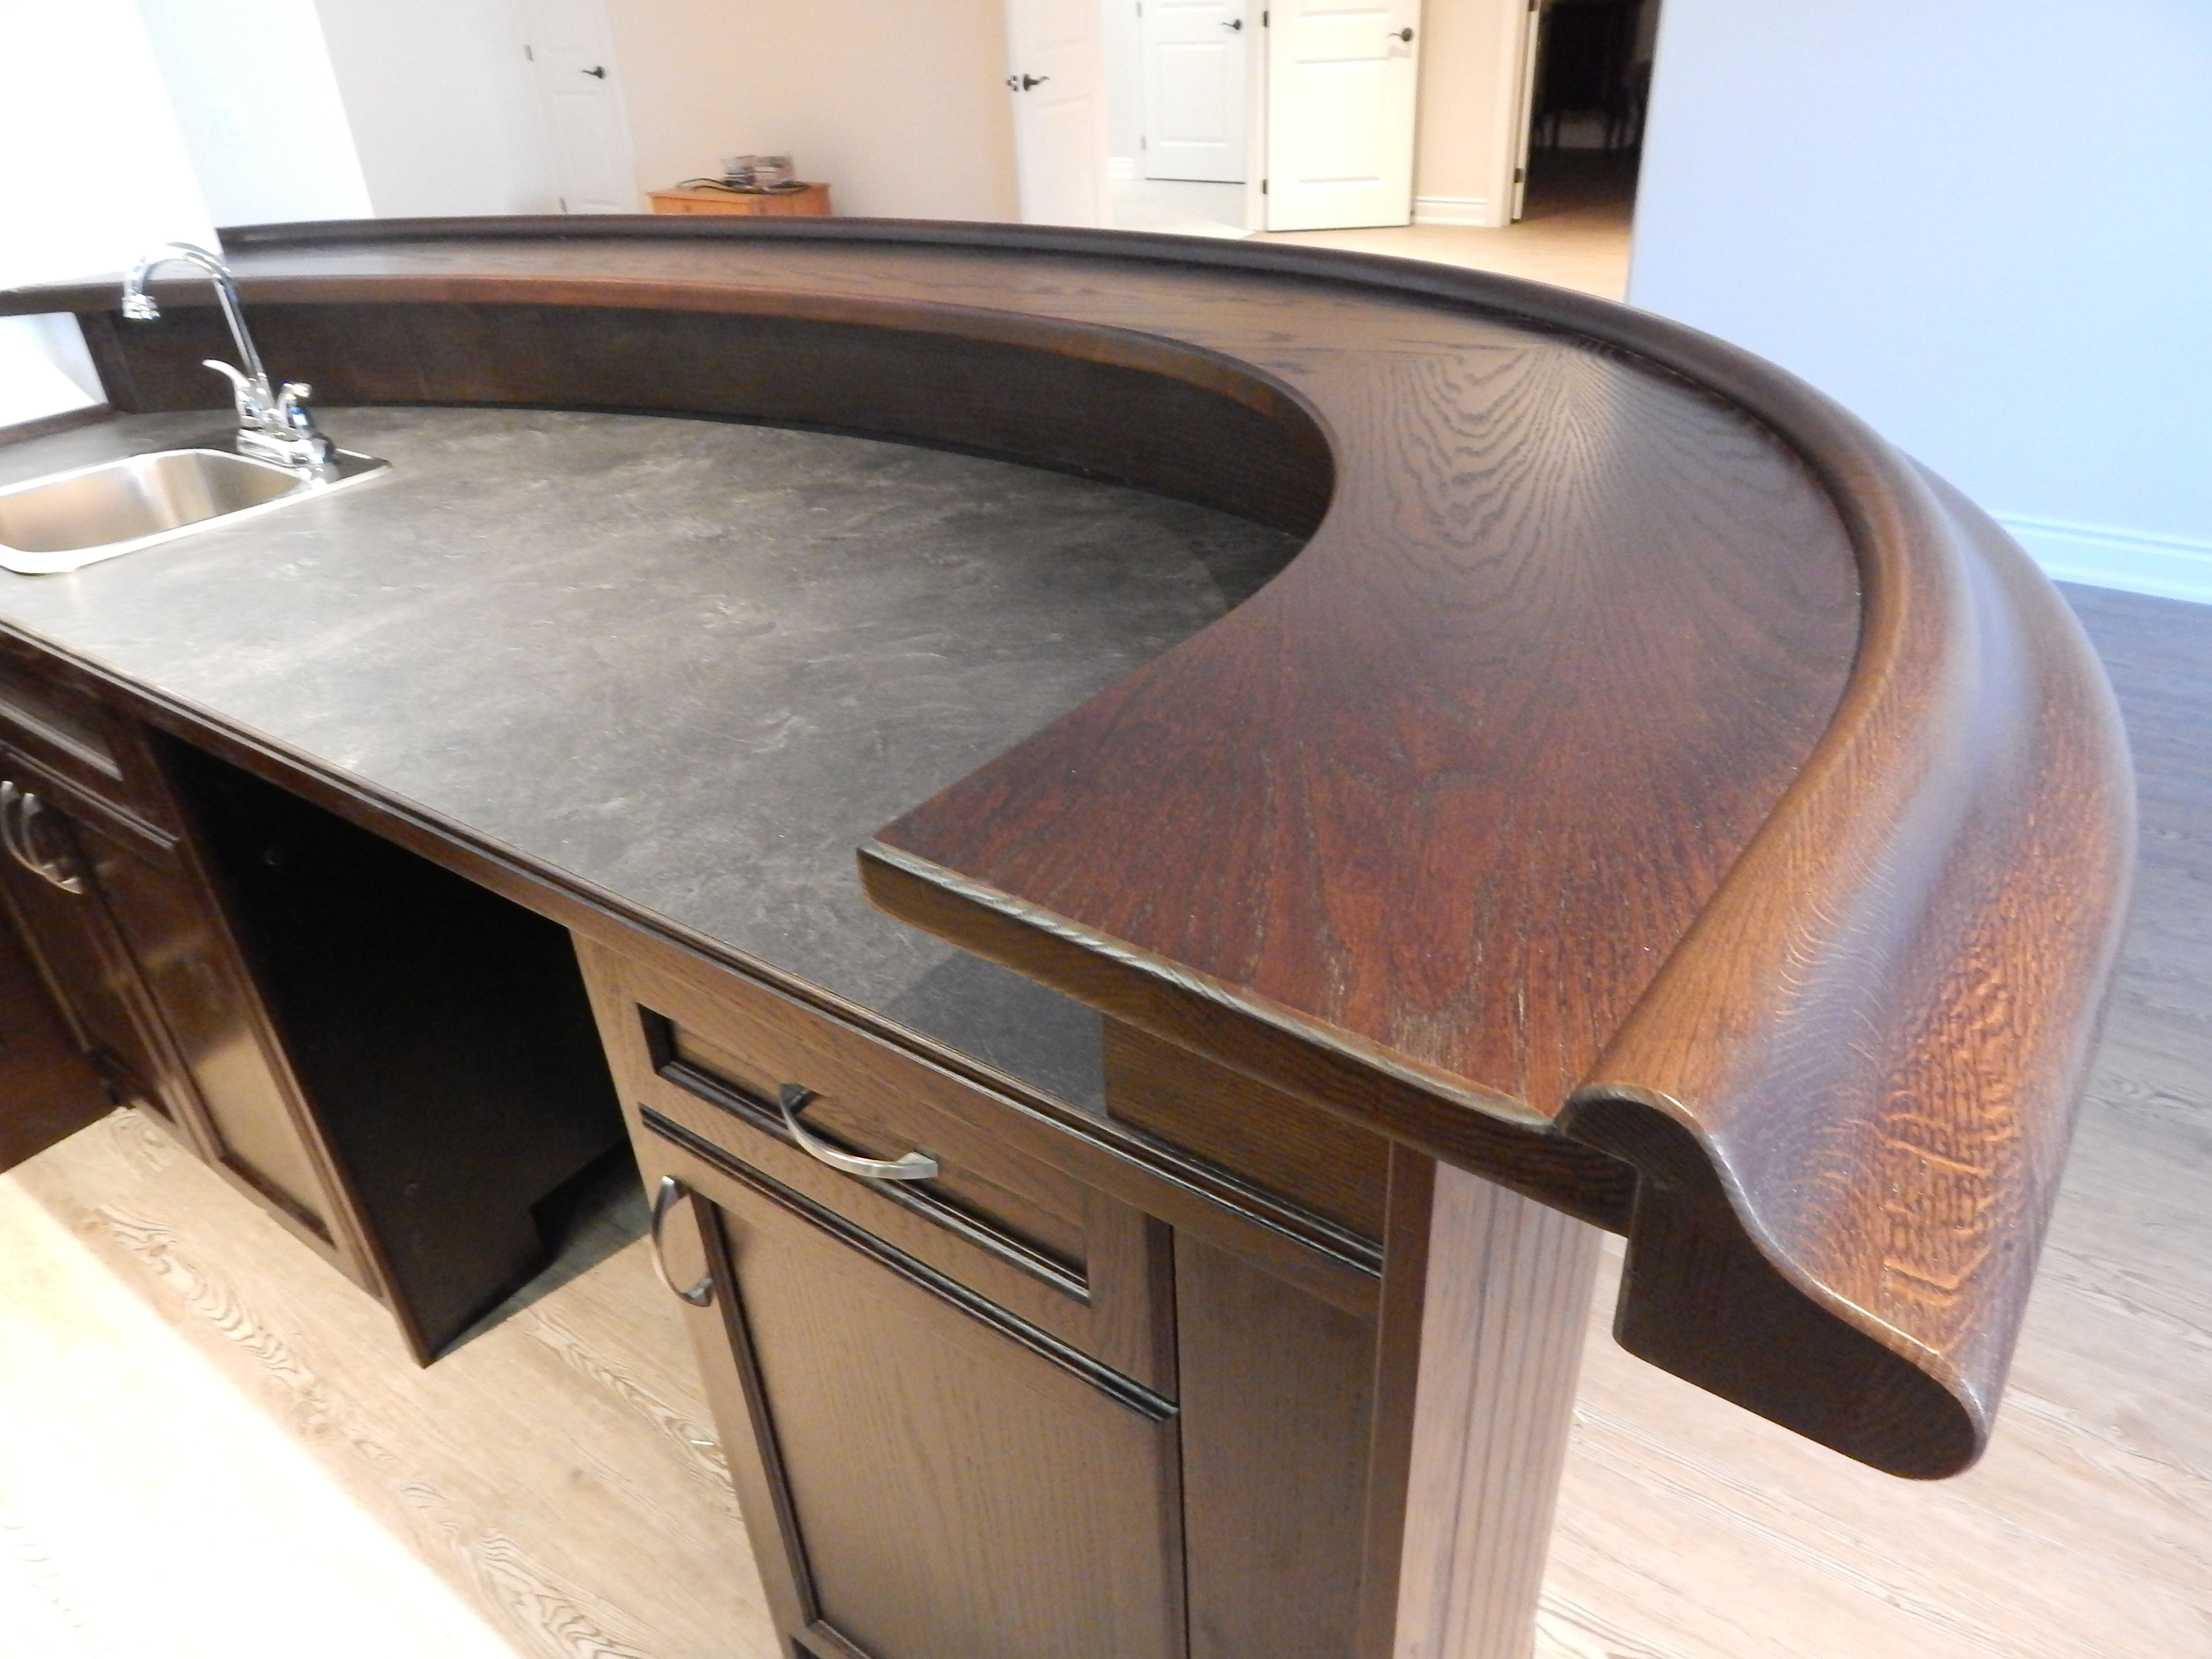 Solid Oak Bar Top And Bar Rail With Laminate Counter Top, Sink U0026 Faucet.